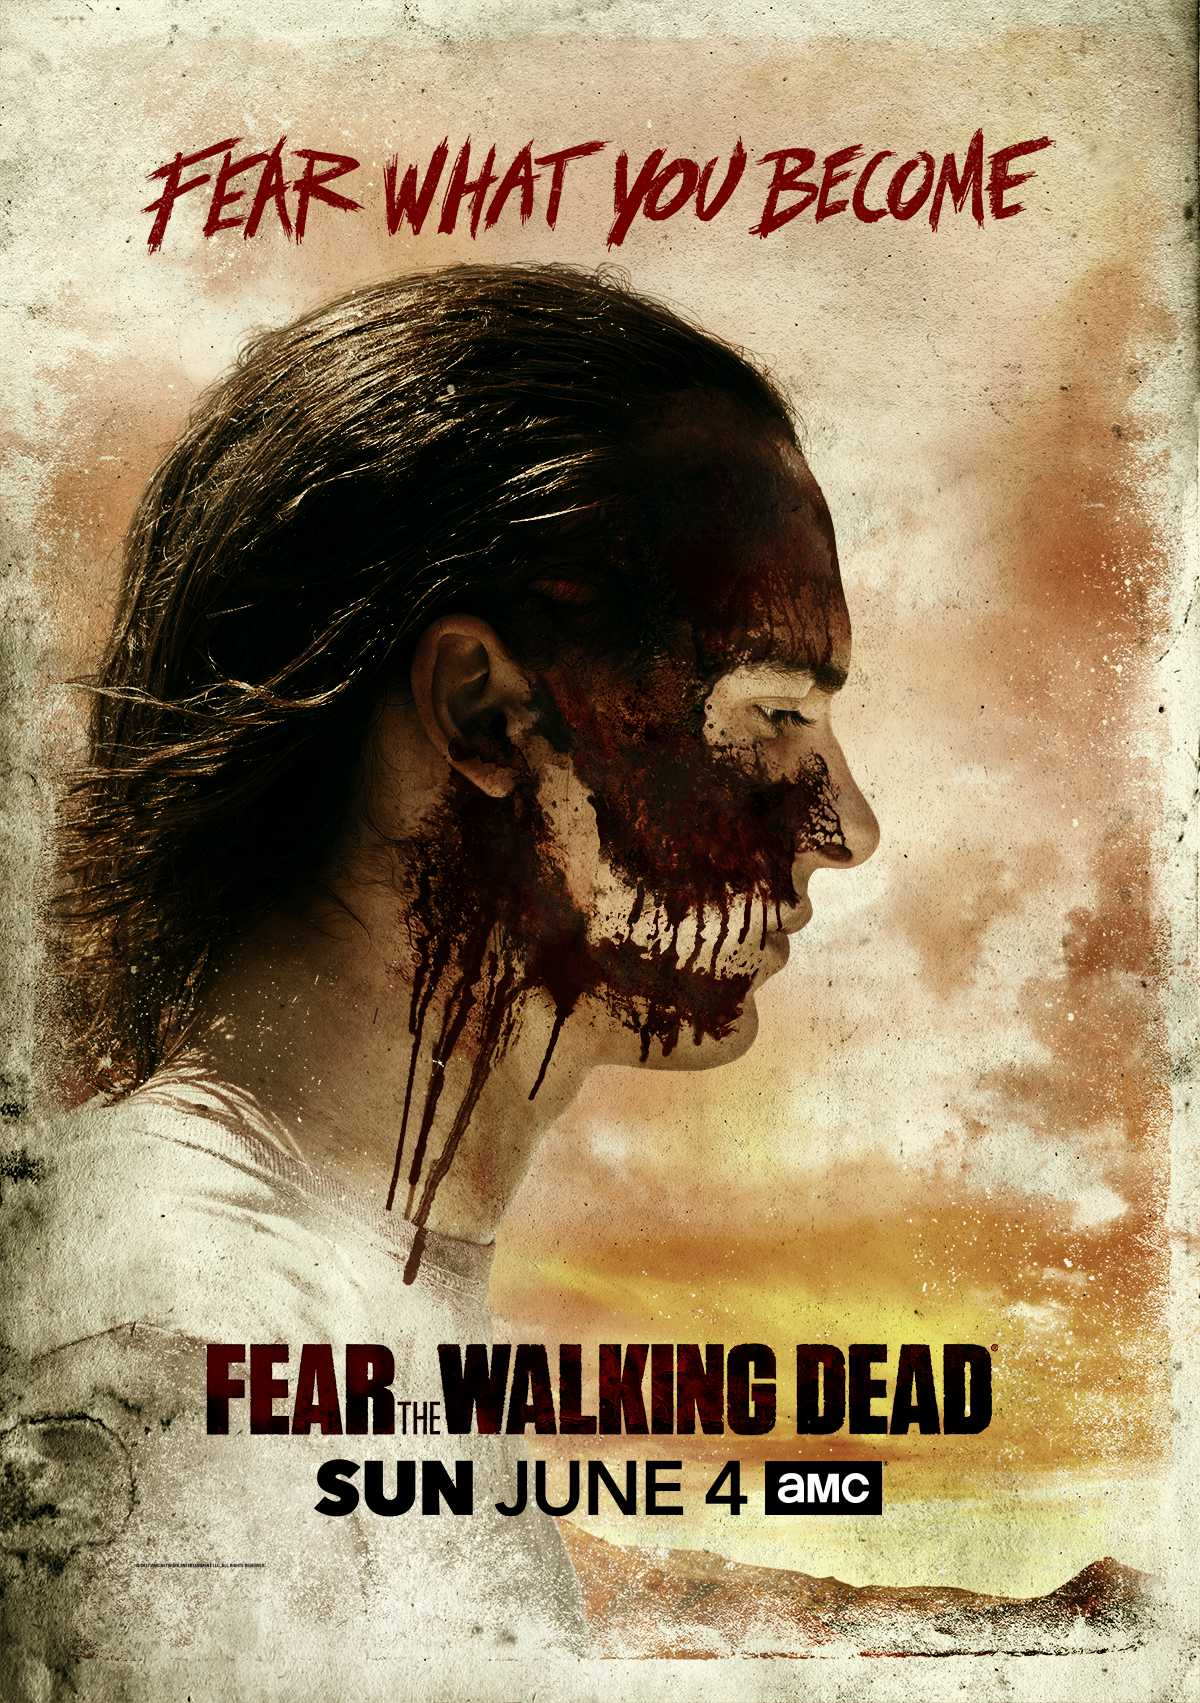 Season 3 Poster For Fear The Walking Dead Gives An Ominous Hint At Wha...